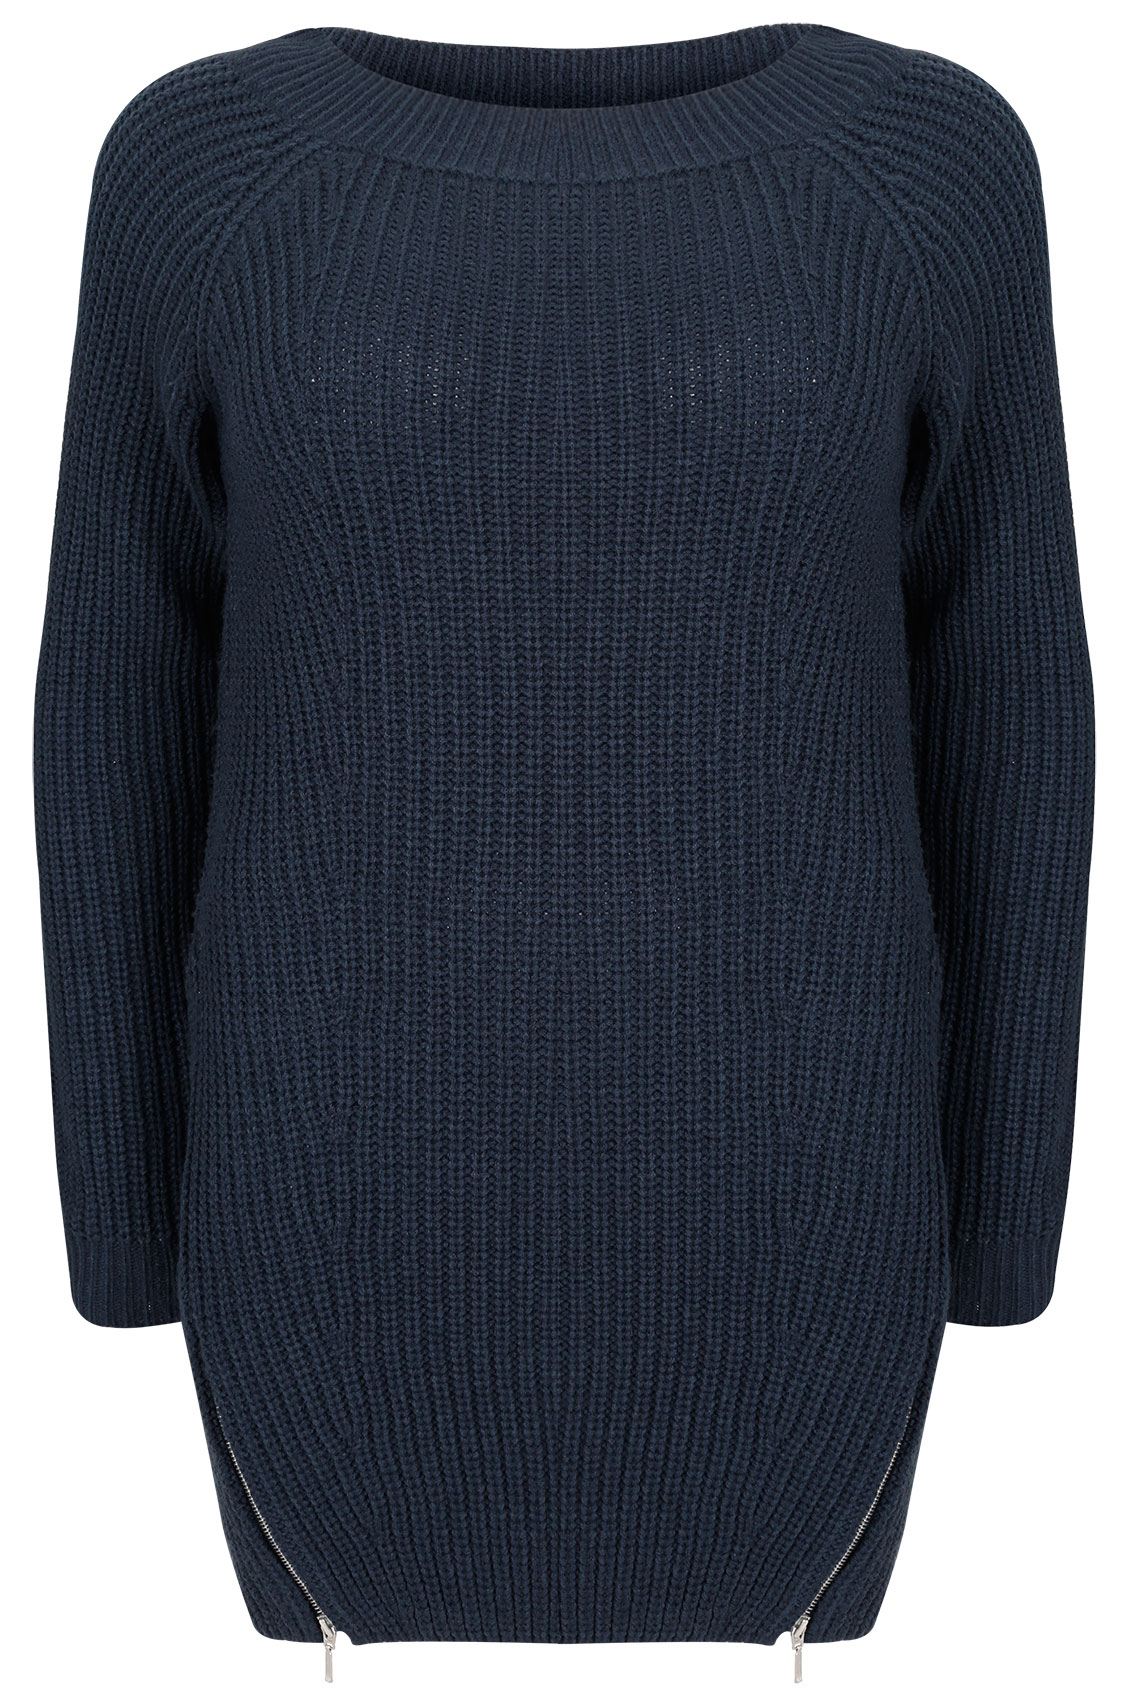 Navy blue knitted coat made from a blend of fabric with ribbed detail. Straight cut, raised collar, front zip fastening, two side pockets with zip and flared finishes on the sleeves and hem.